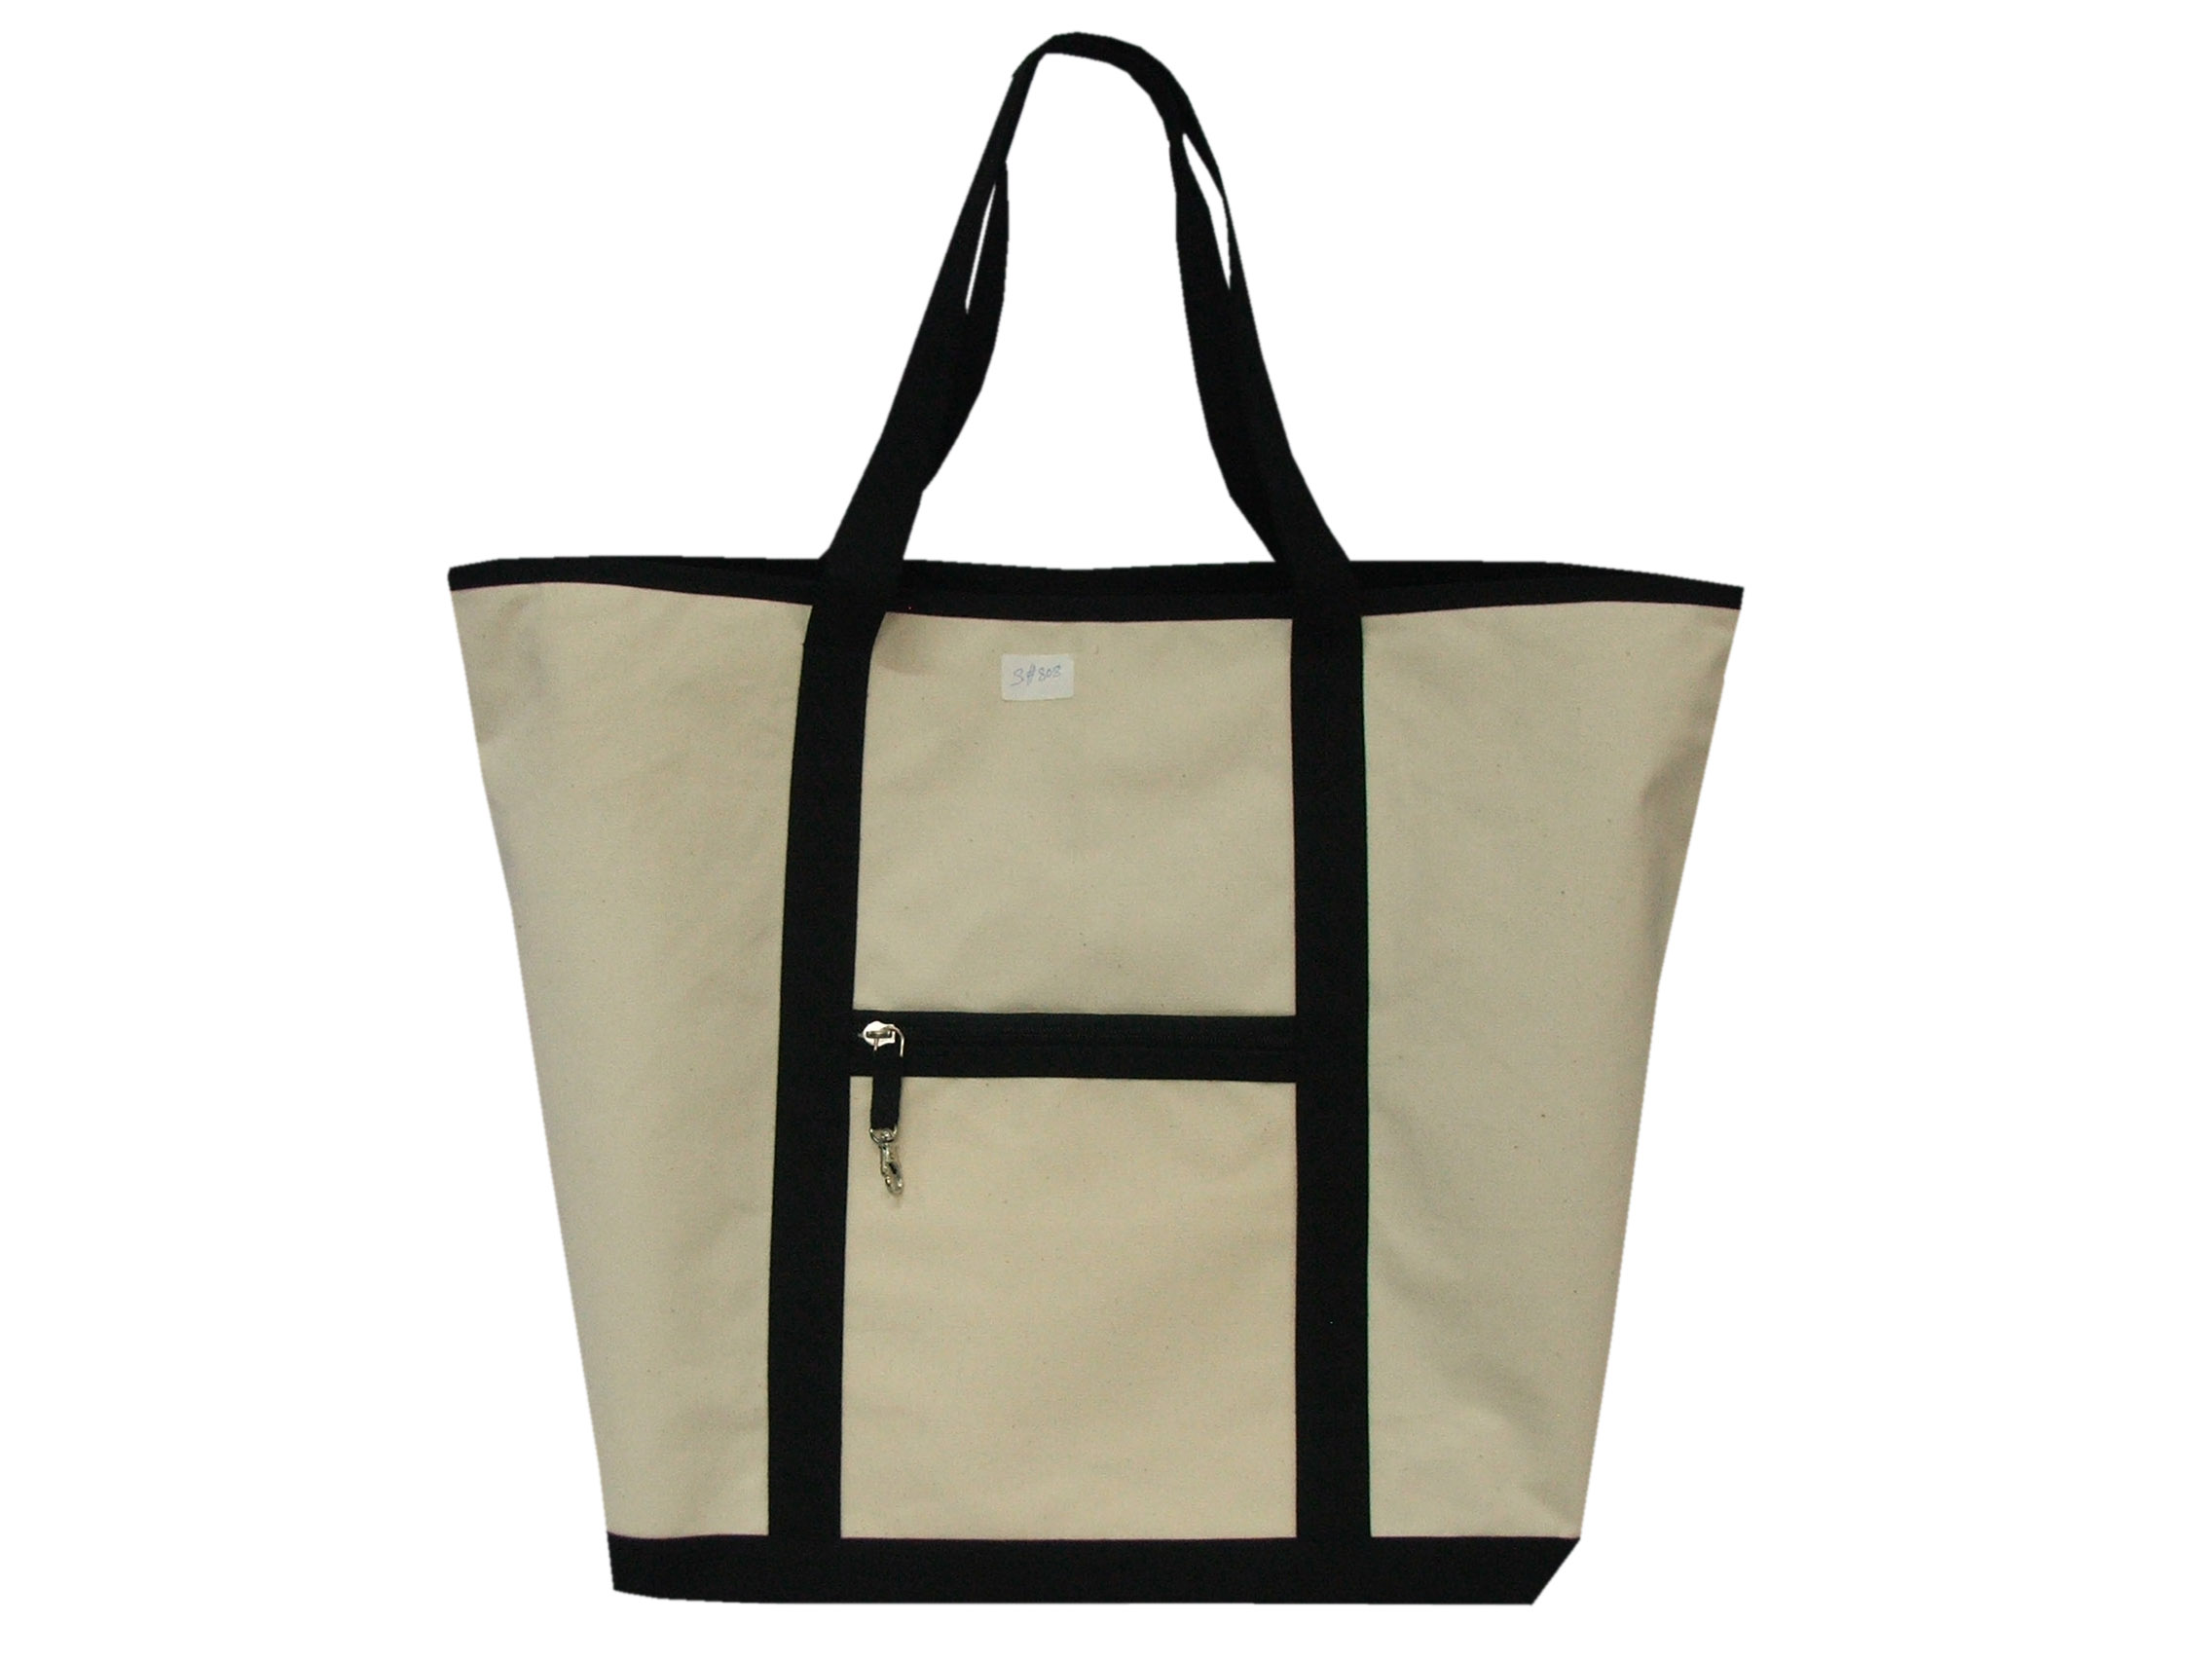 Deluxe Recycled Canvas Tote Bag